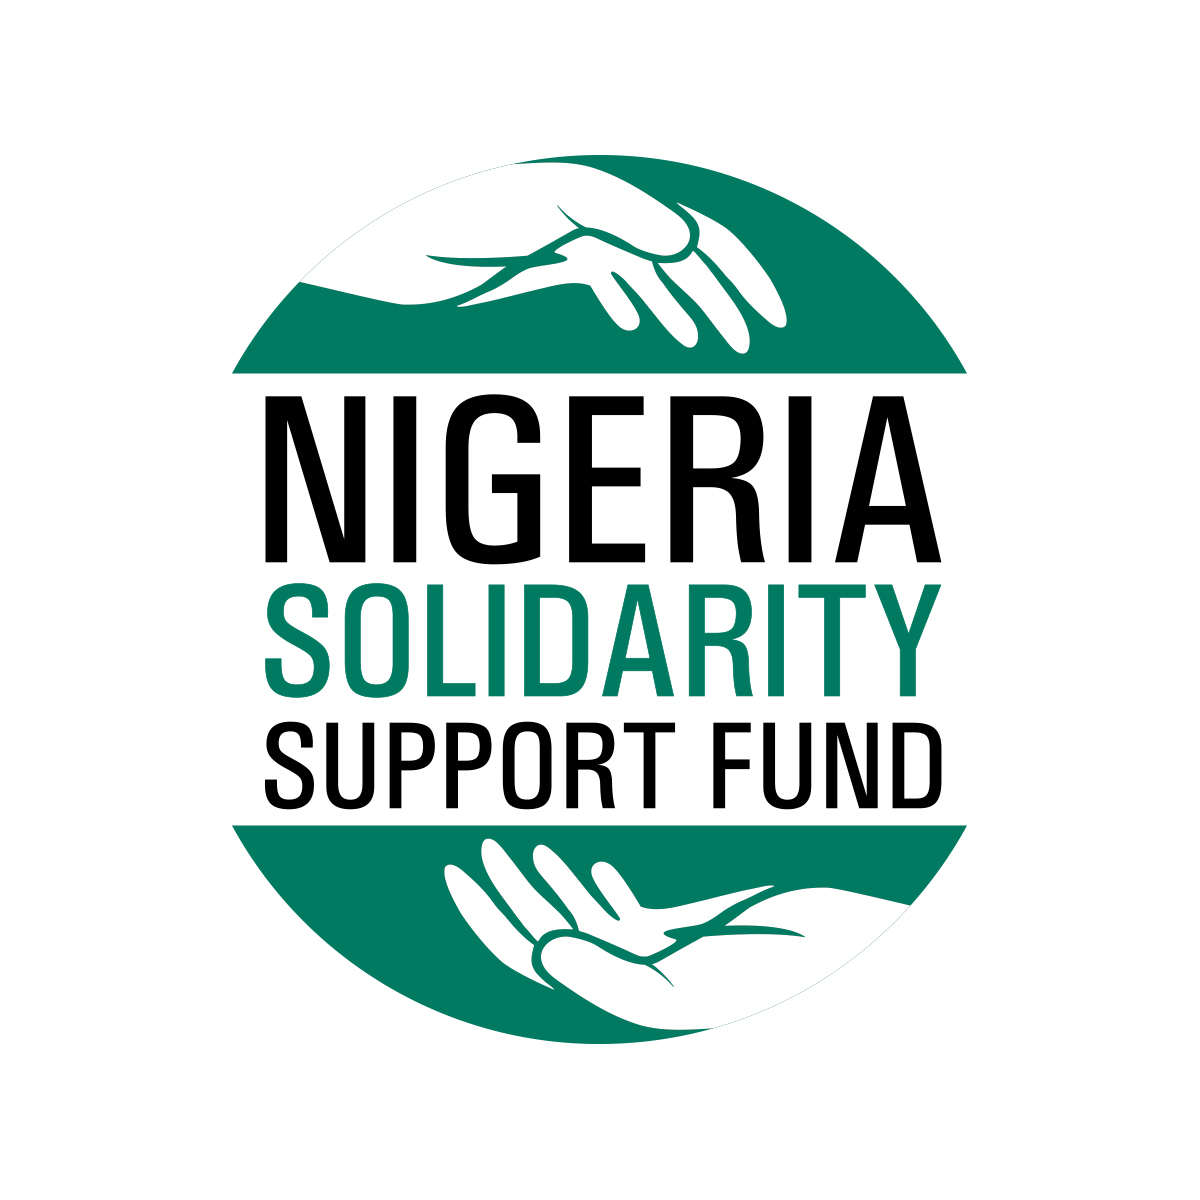 The Nigeria Solidarity Support Fund